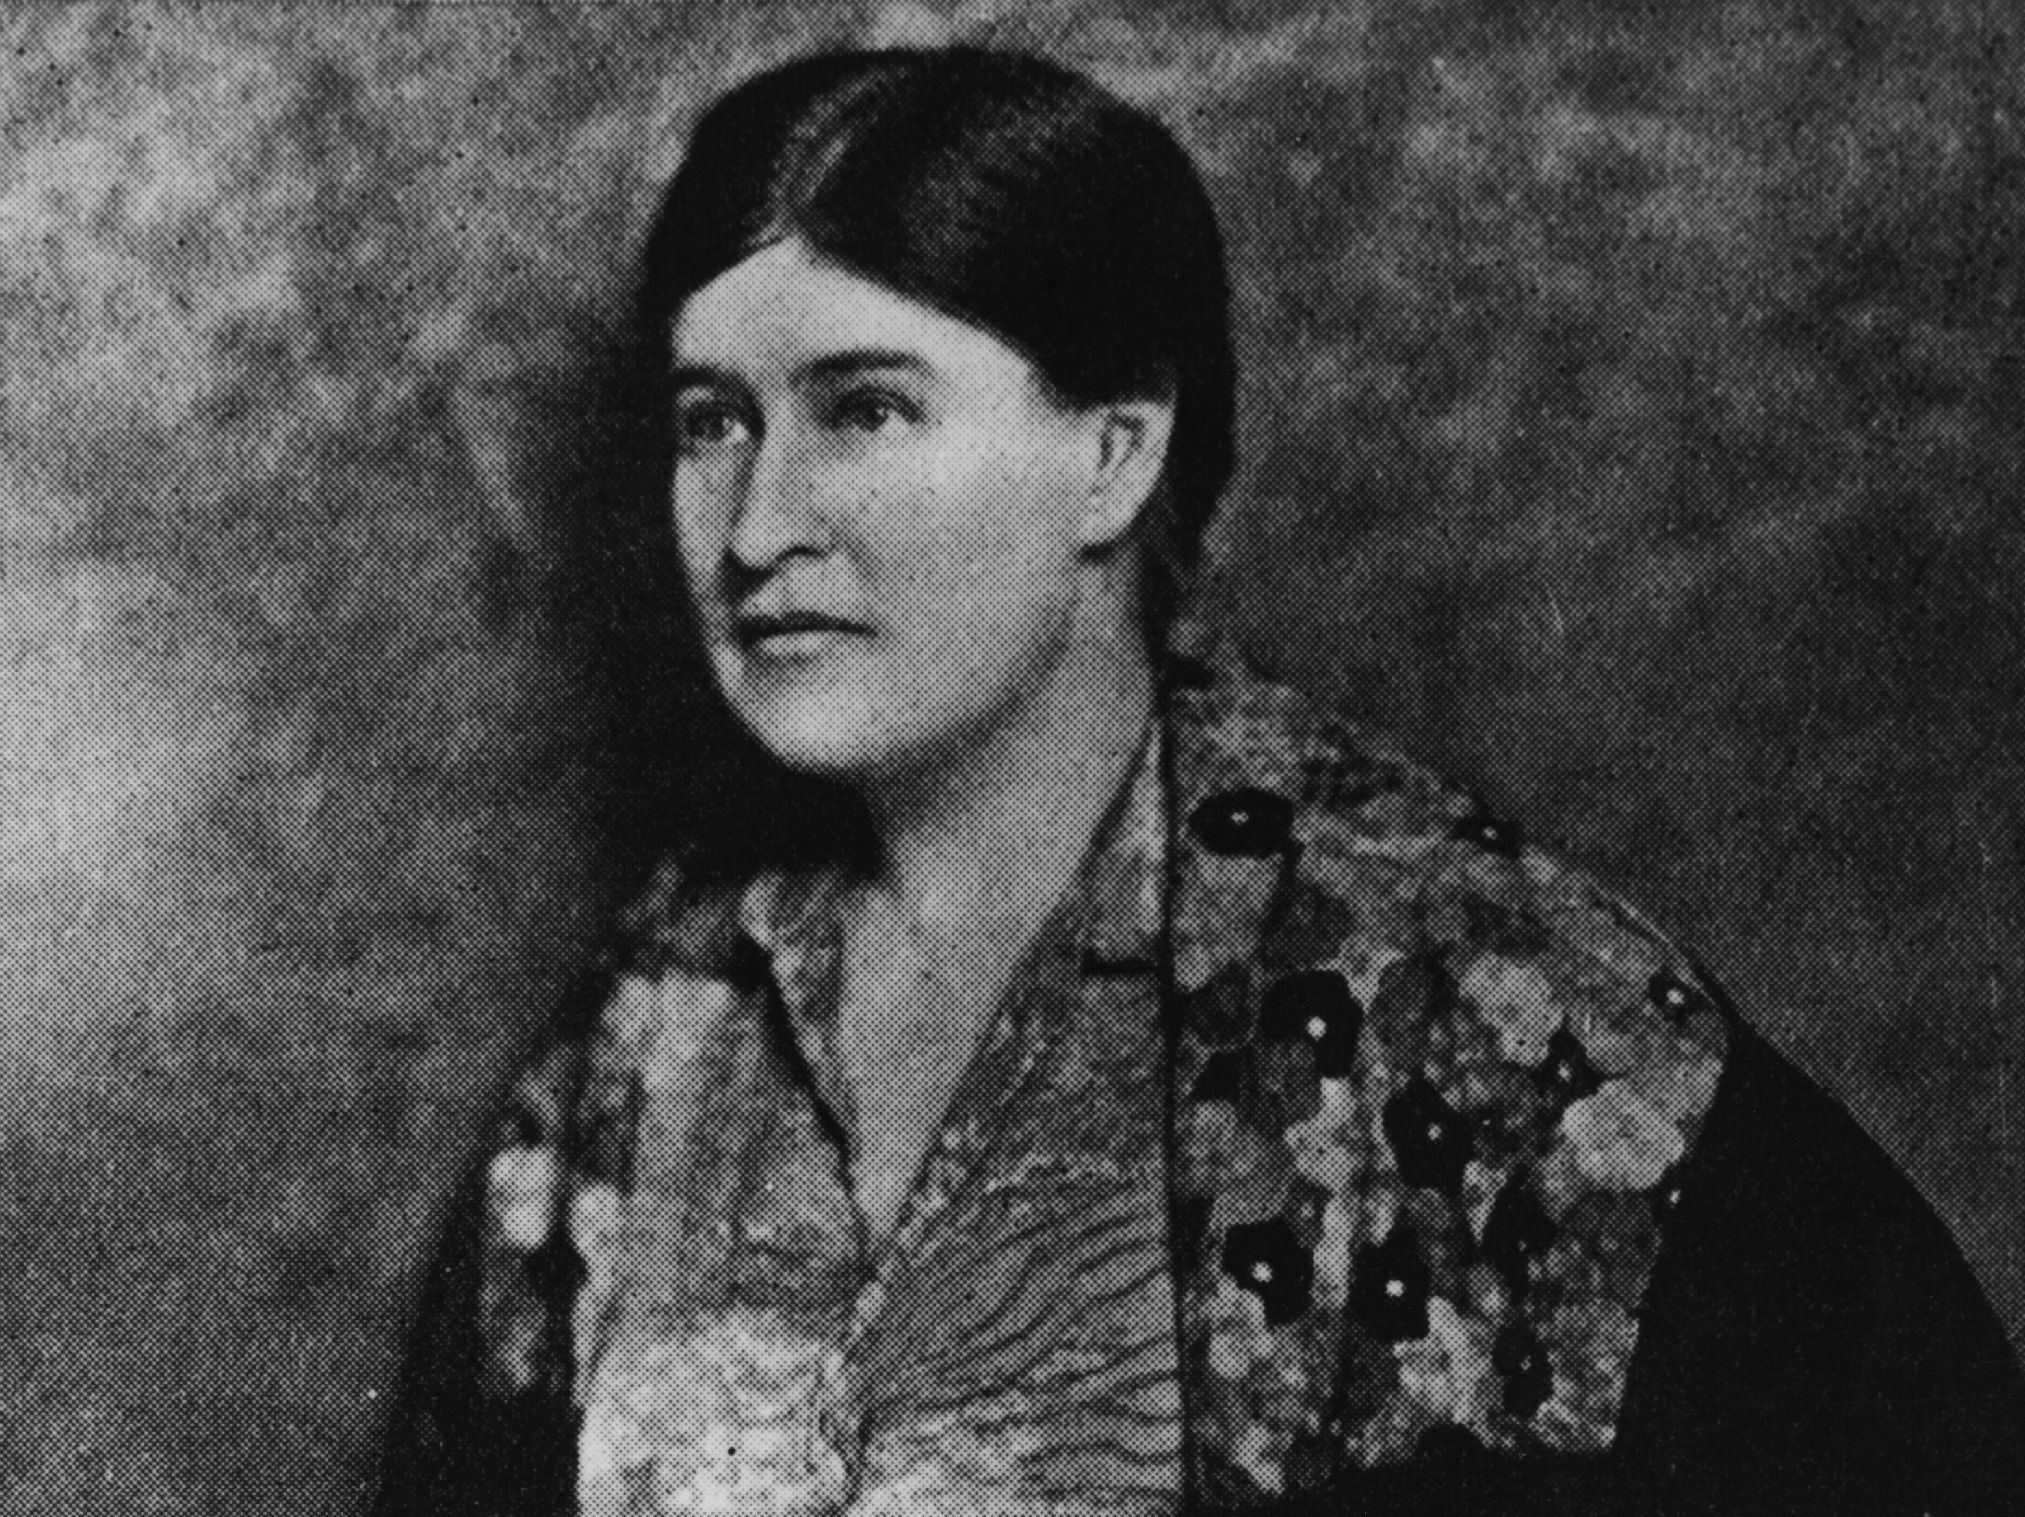 Book News: Willa Cather's Letters To Be Published Against Her Wishes